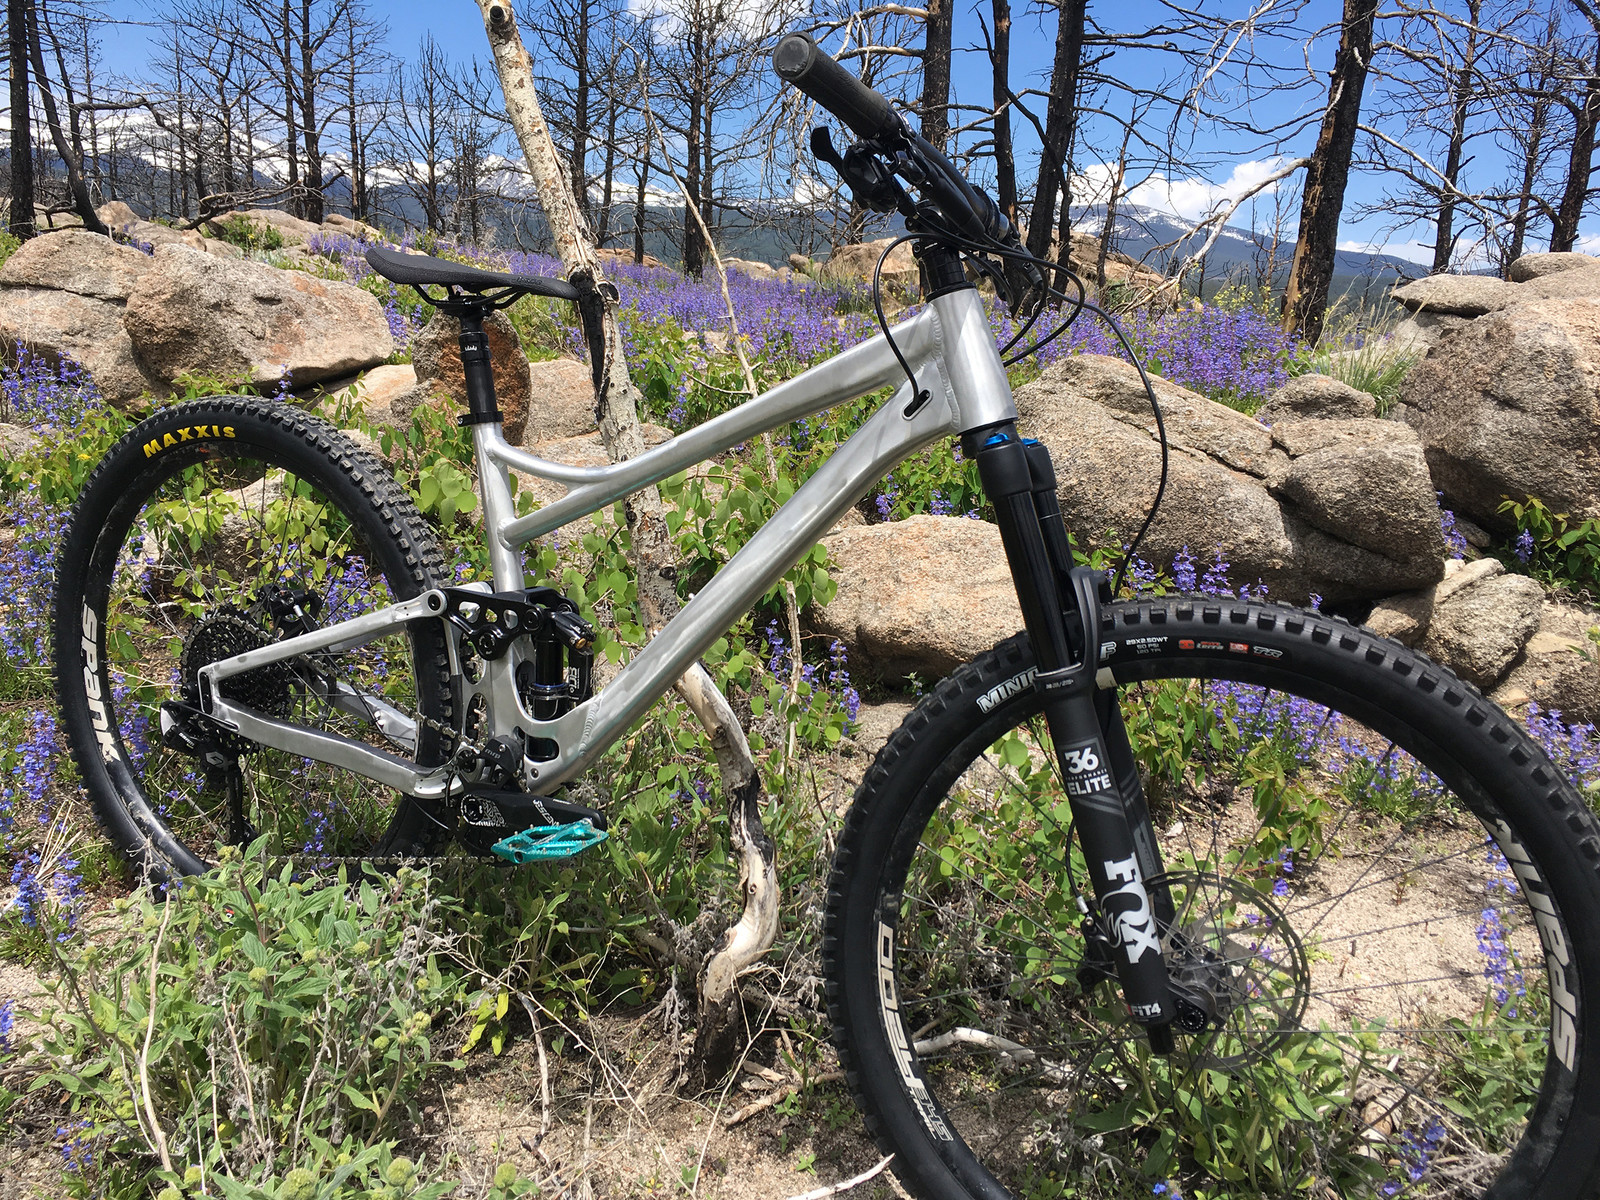 Banshee Sales Manager (and EX team USA DH racer) Michael Buell's prototype Prime V3 was tested high up in the stunning Colorado Rockies.